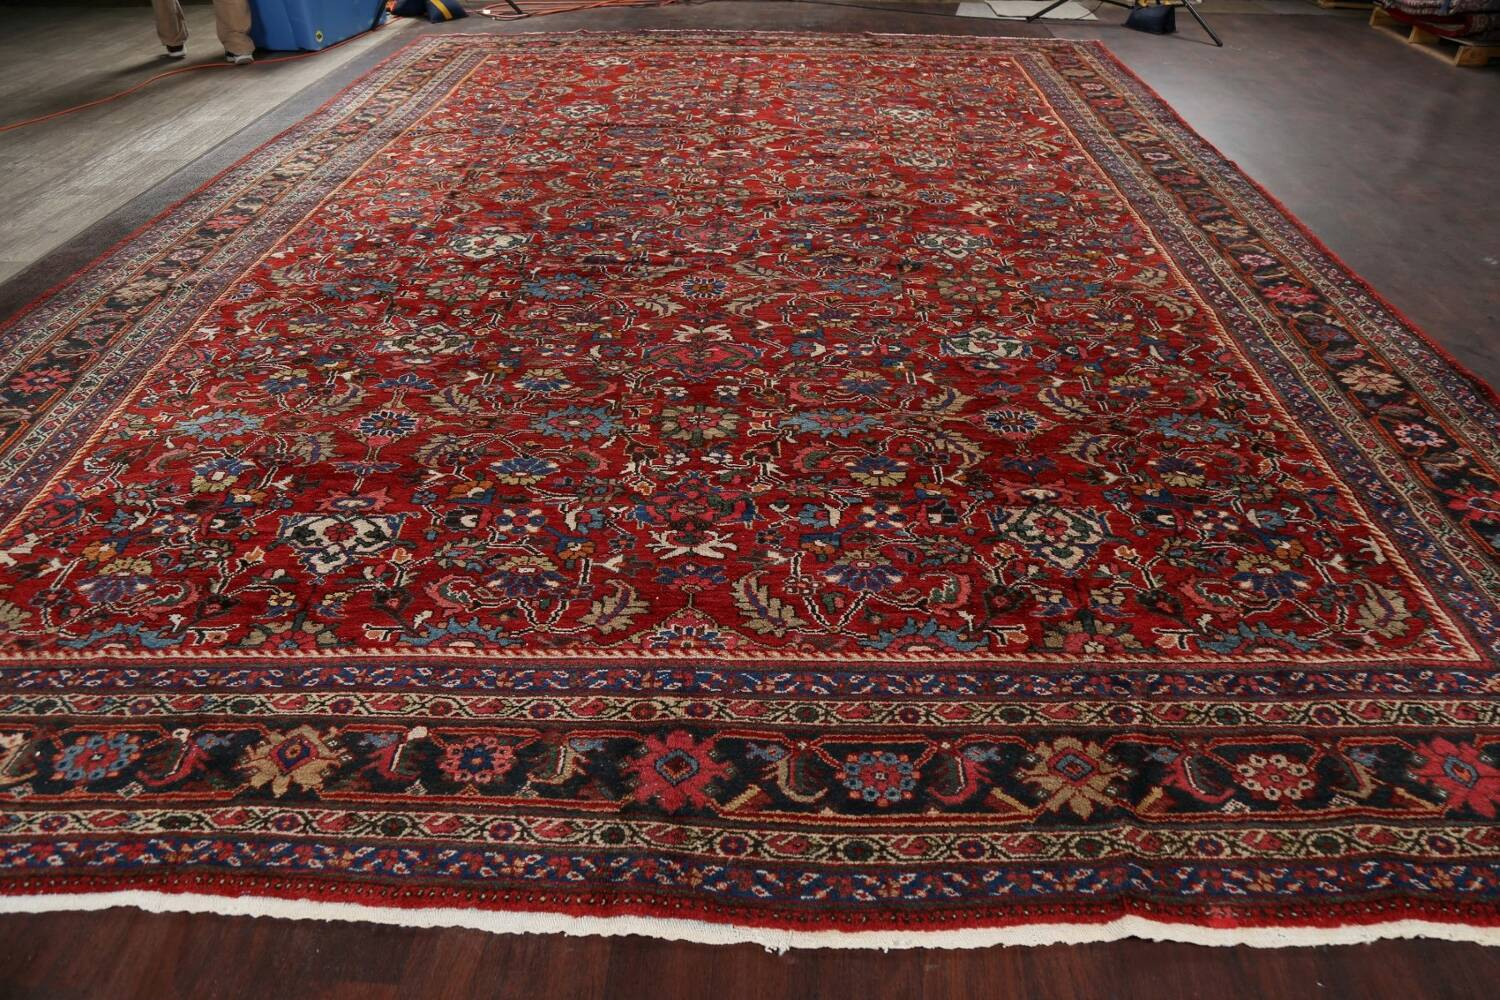 Antique 100% Vegetable Dye Sultanabad Persian Area Rug 12x17 image 18